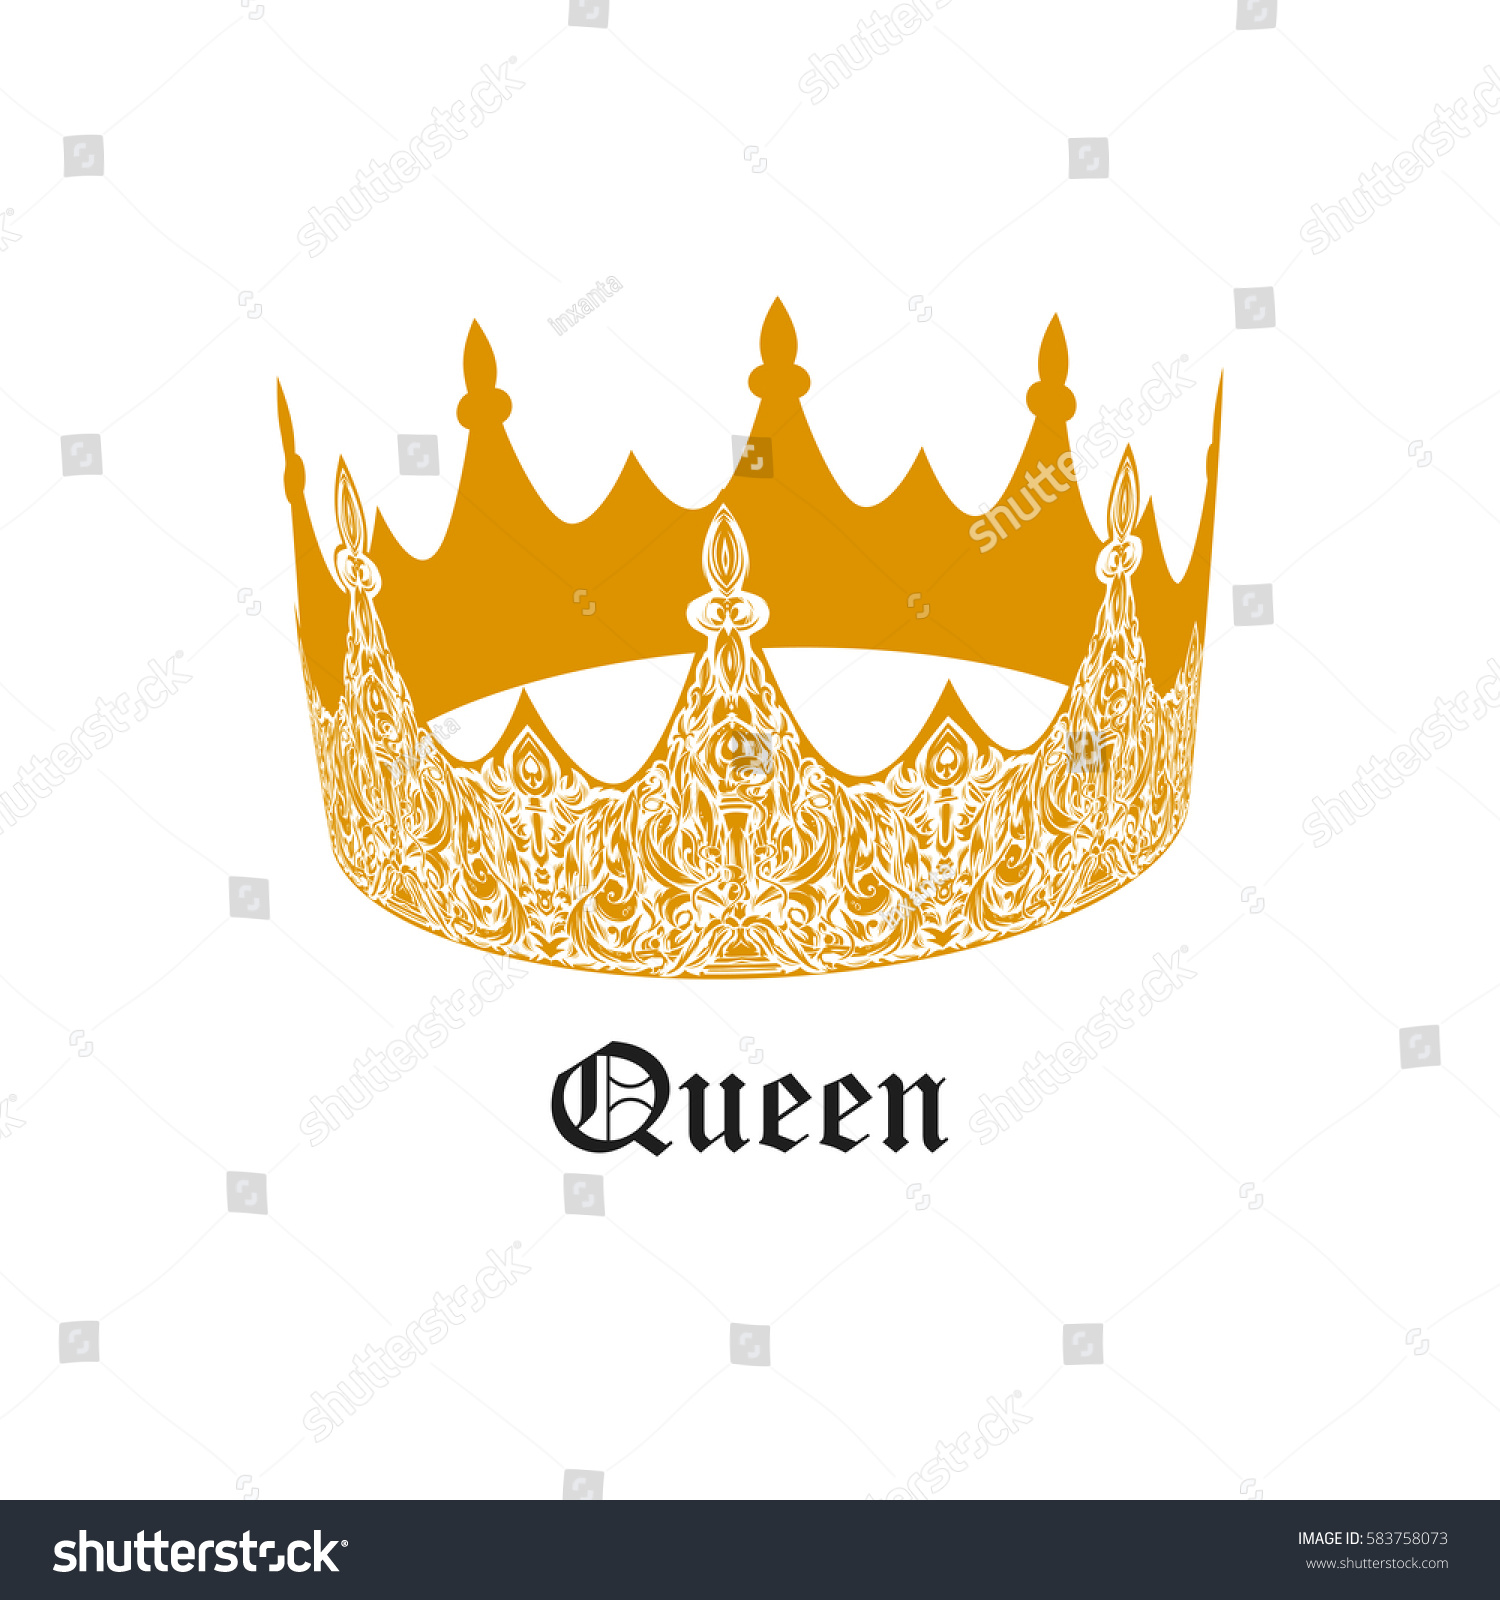 Beautiful Gold Vintage Crown Patterned Old Stock Vector 583758073